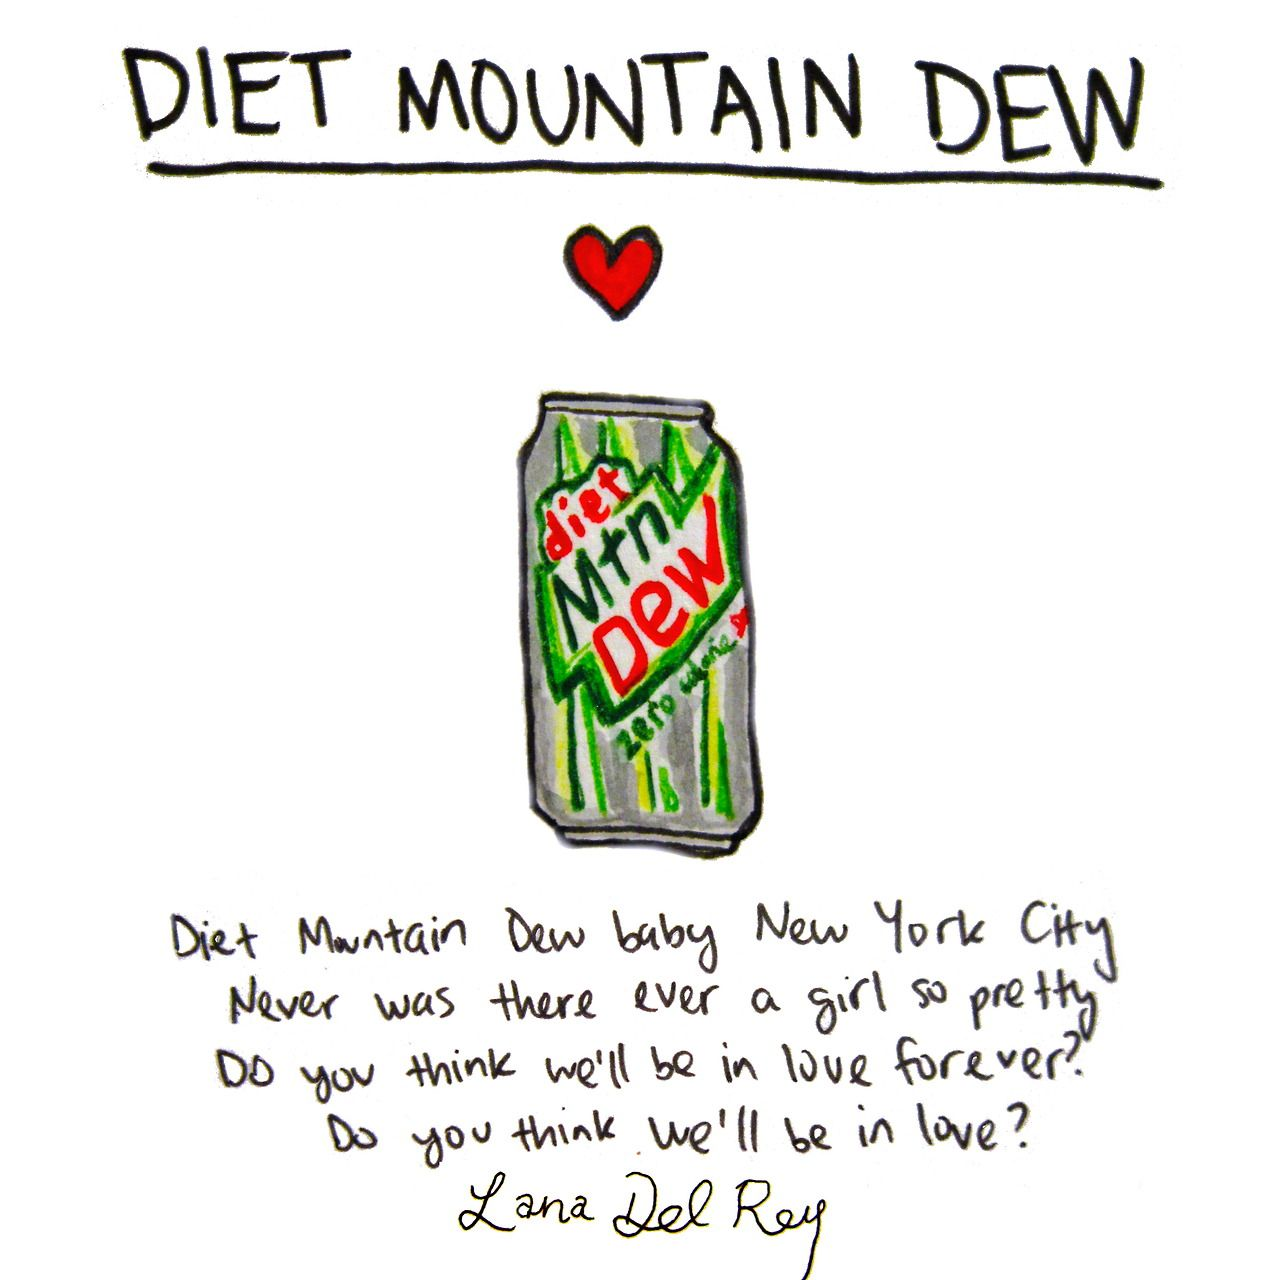 Has Diet Mountain Dew Changed?